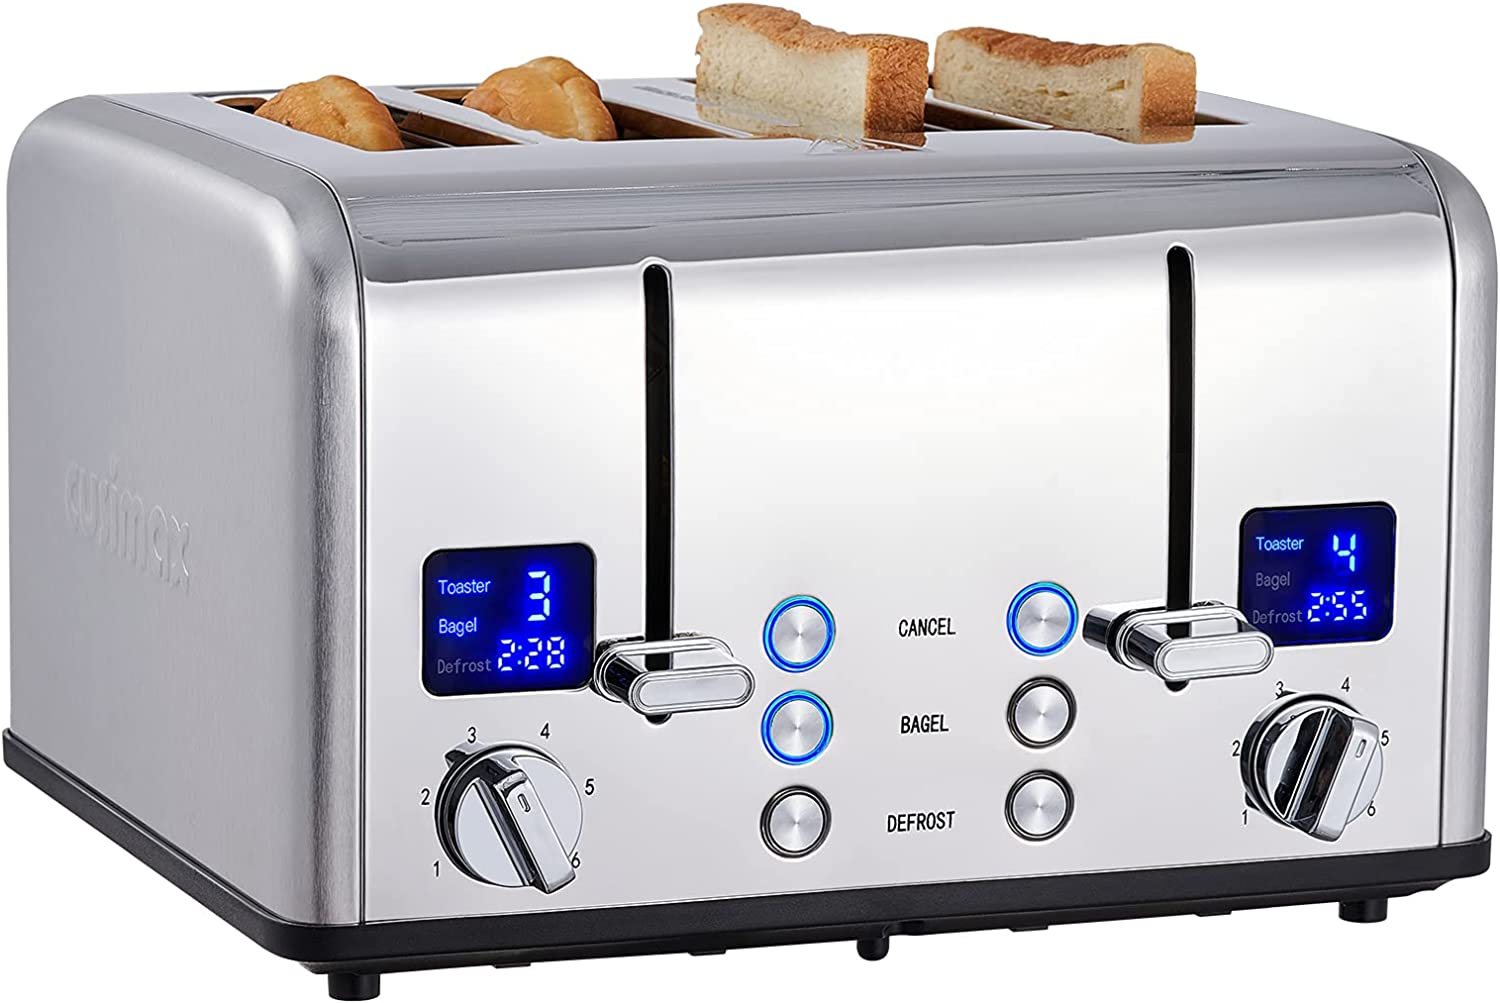 CUSIMAX 4 Slice Toaster, Ultra-Clear LED Display & Extra Wide Slots, Dual Control Panels of 6 Shade Settings, Cancel/Bagel/Defrost Function, Removable Crumb Trays, Stainless Steel Toaster